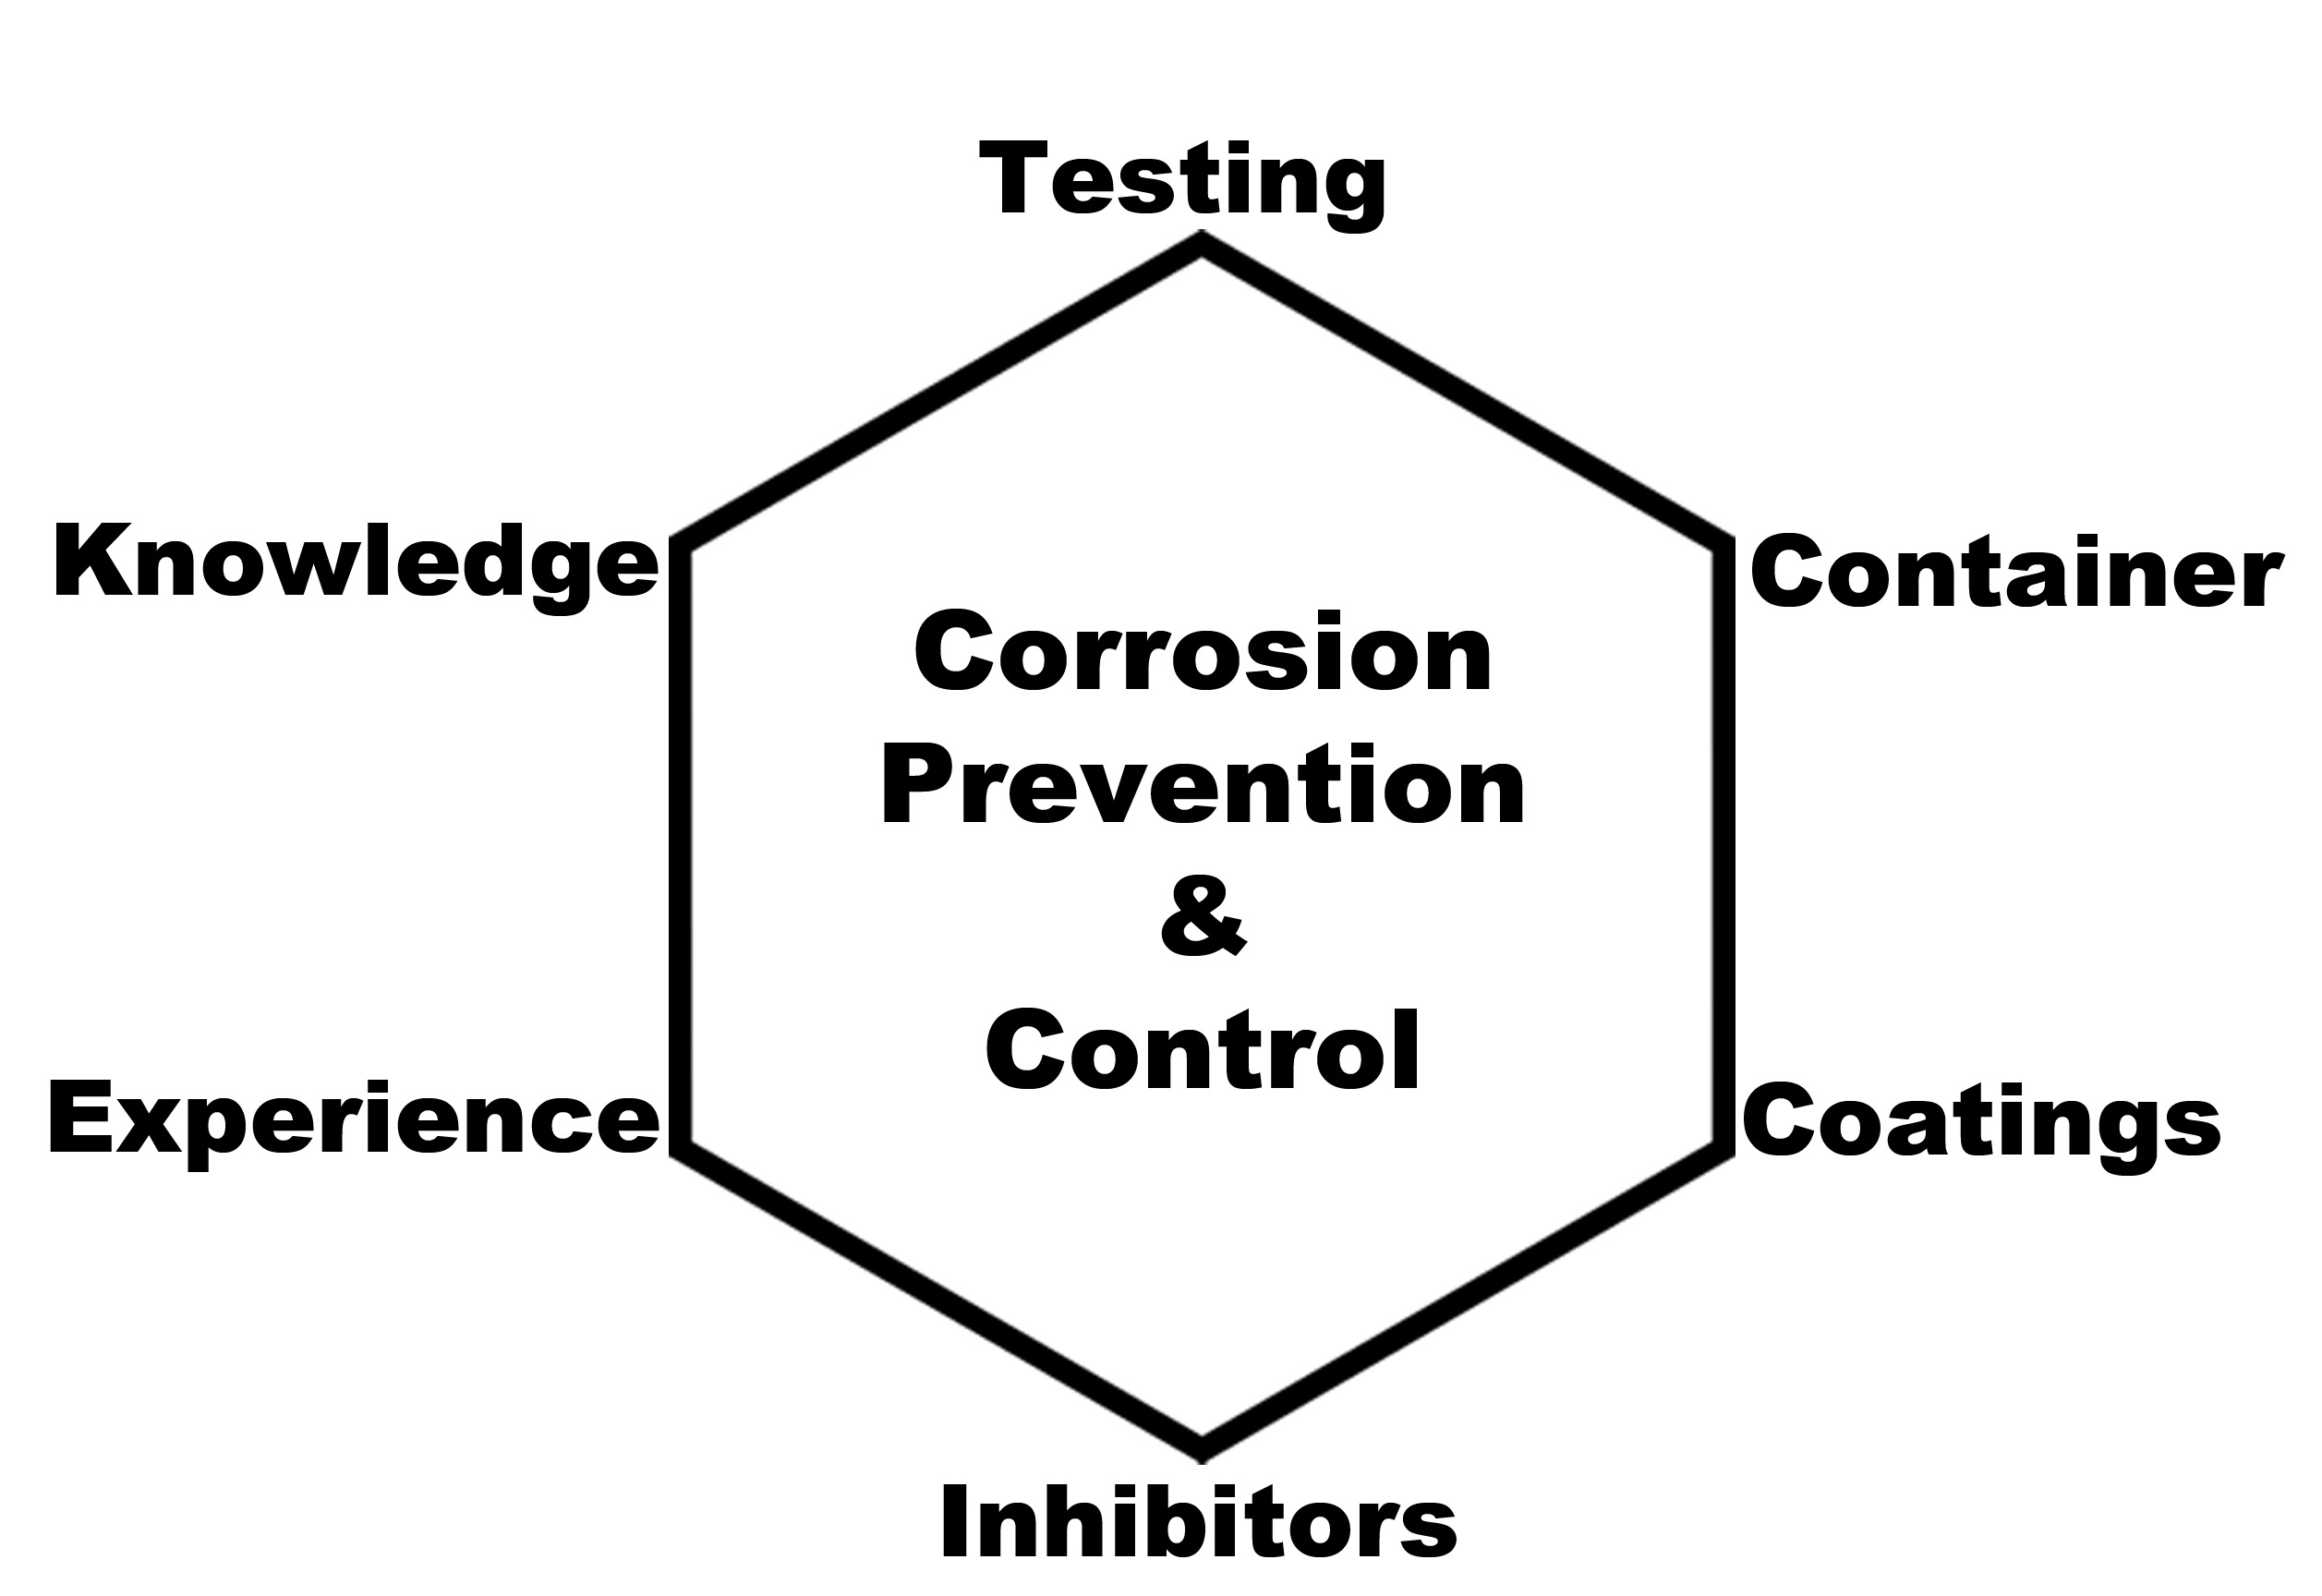 Corrosion prevention and control is a process, not a one